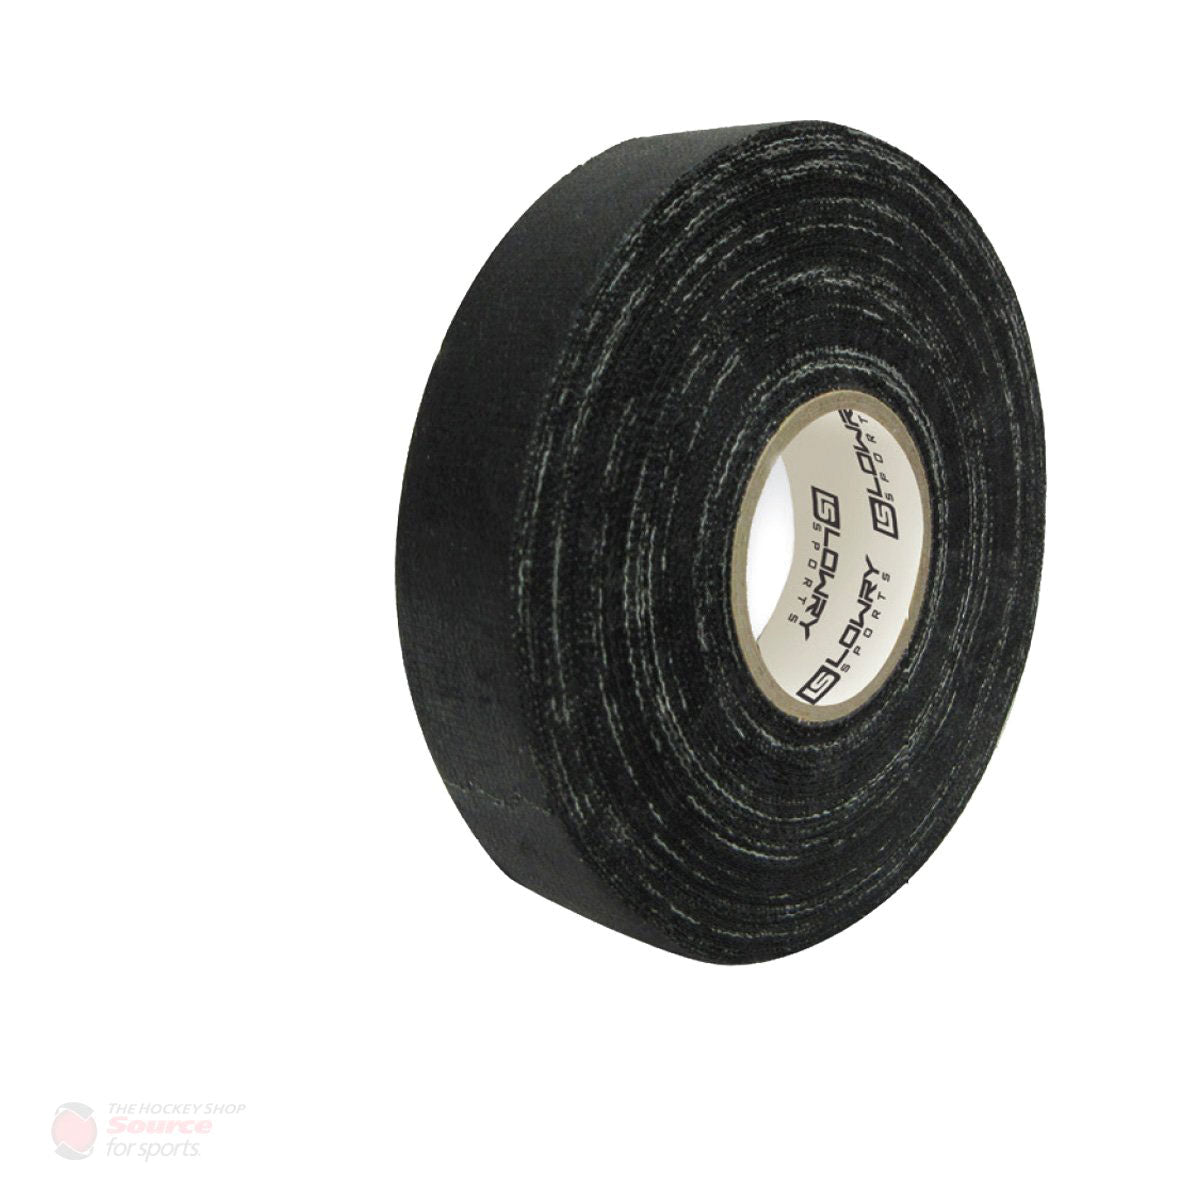 Lowry Sports Black Friction Tape